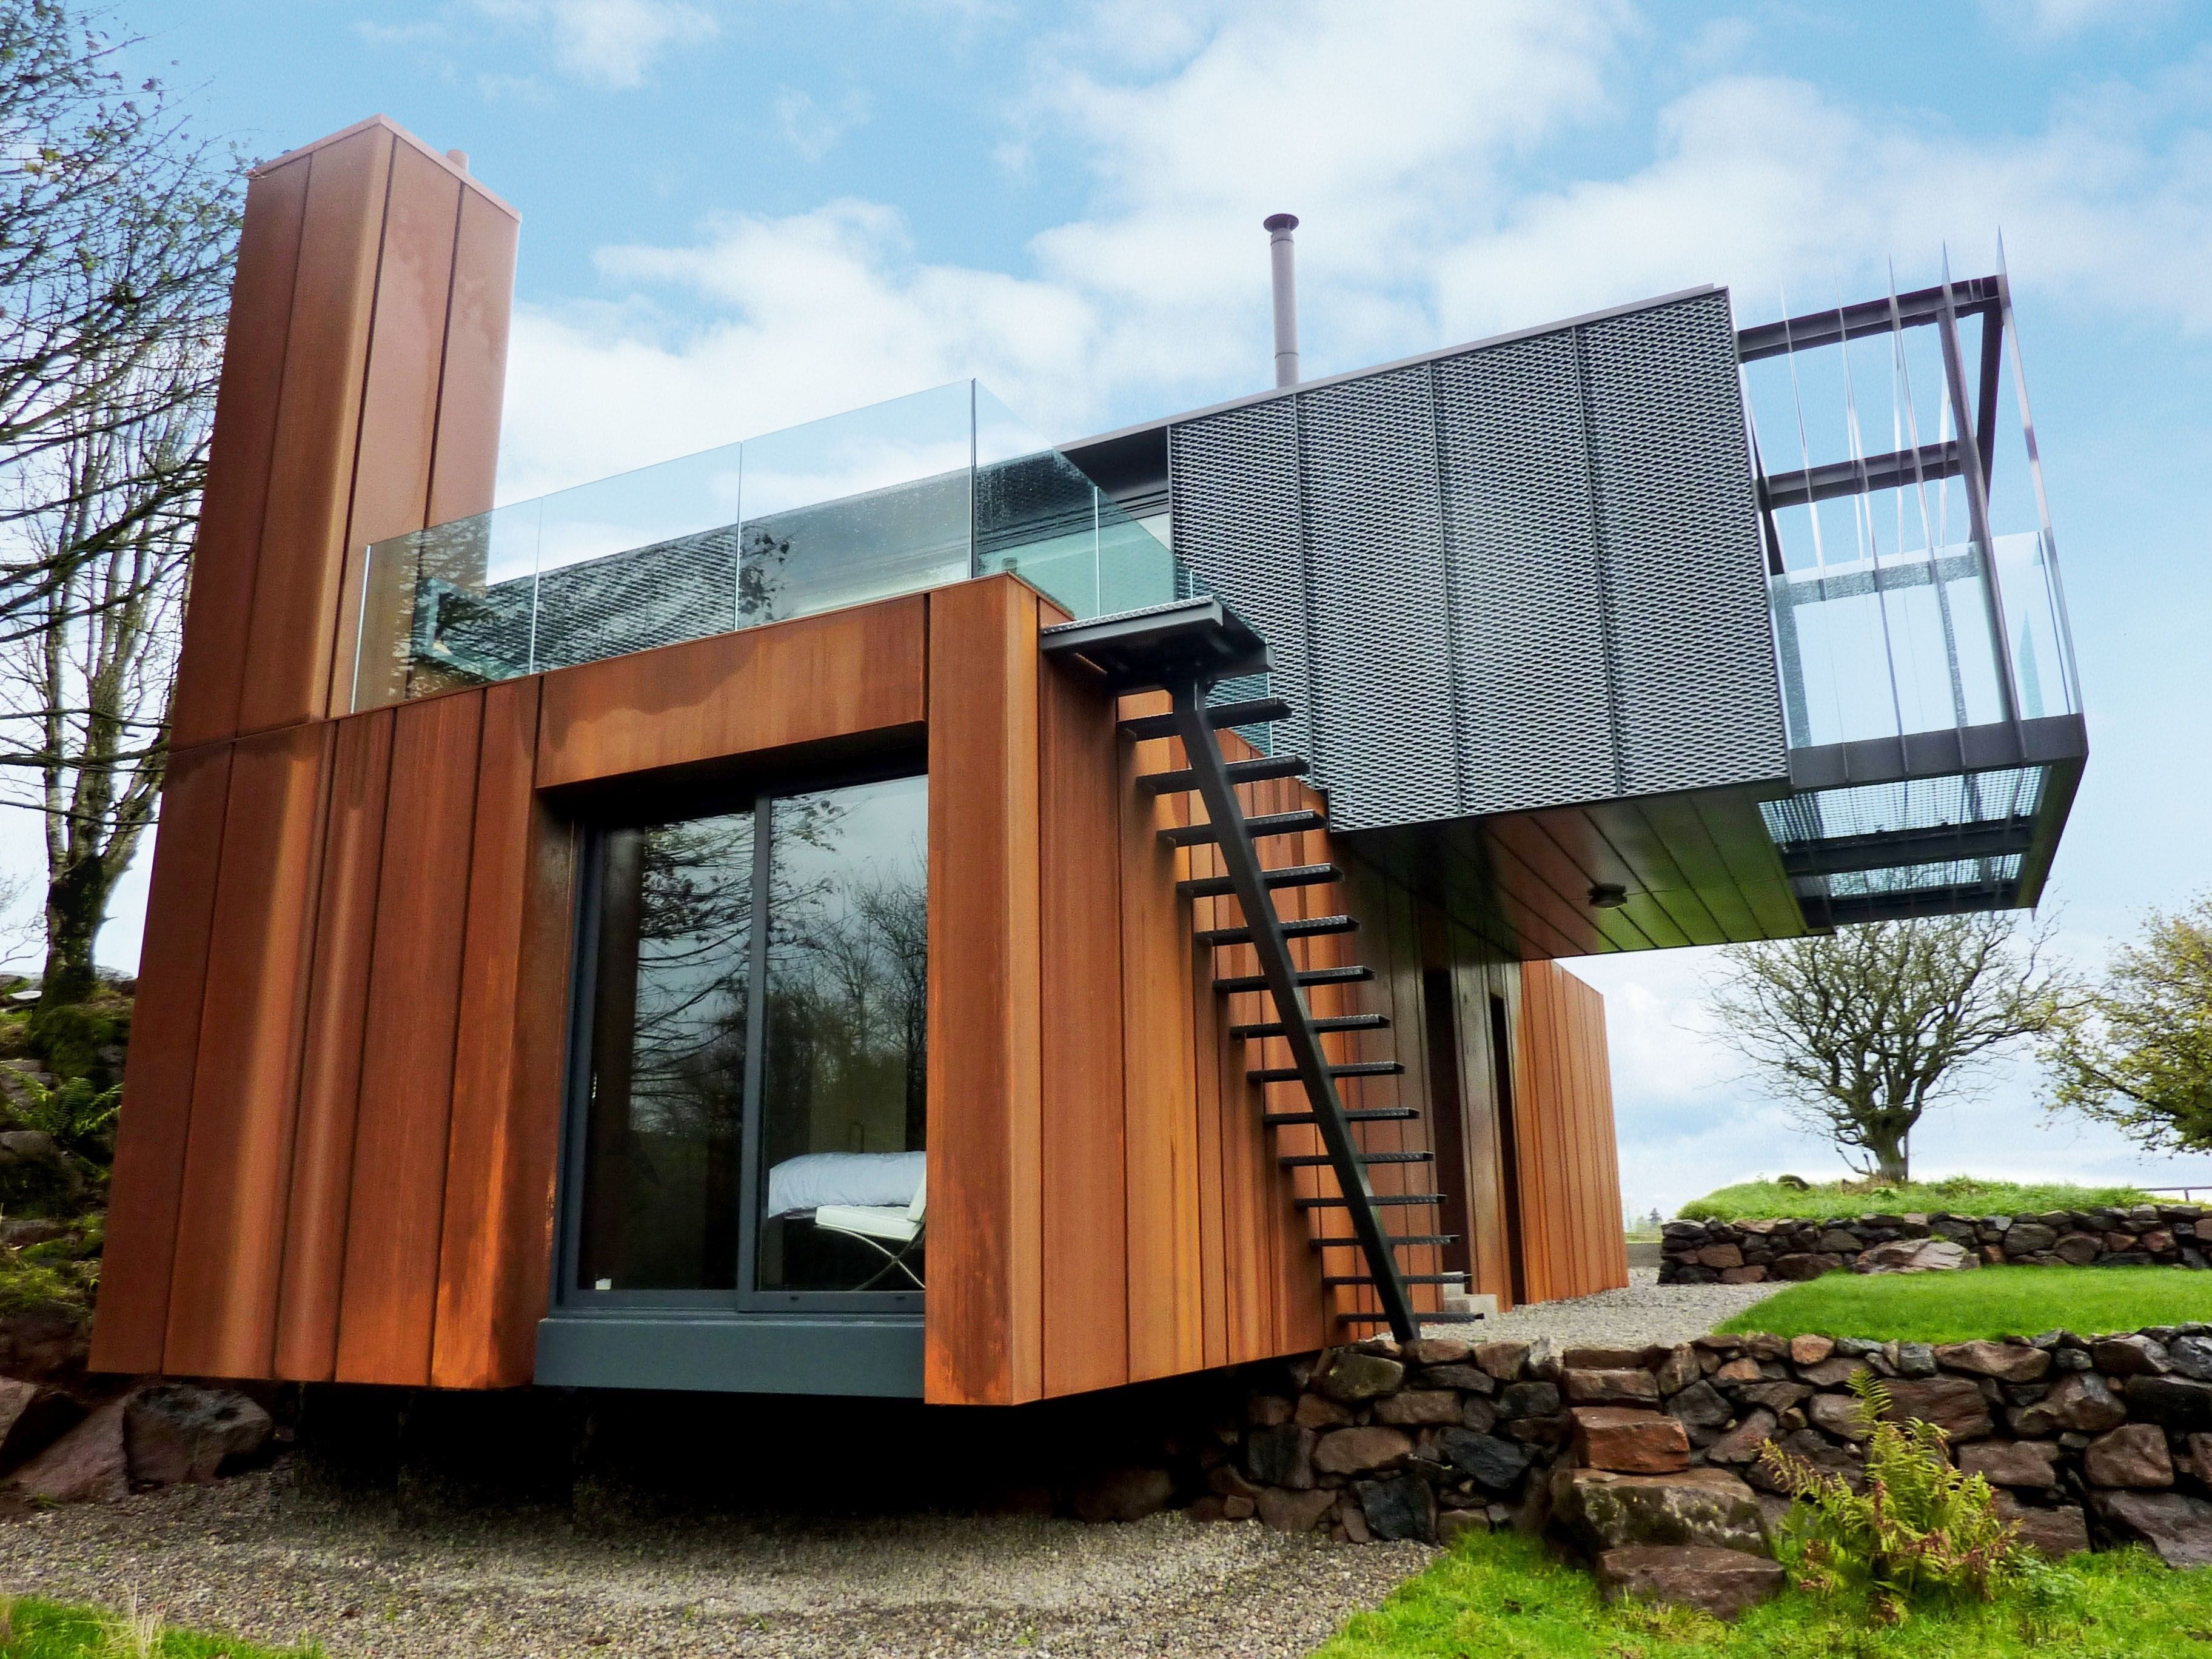 Container house home decor page 60 interior design shew - Simple container house plans ...